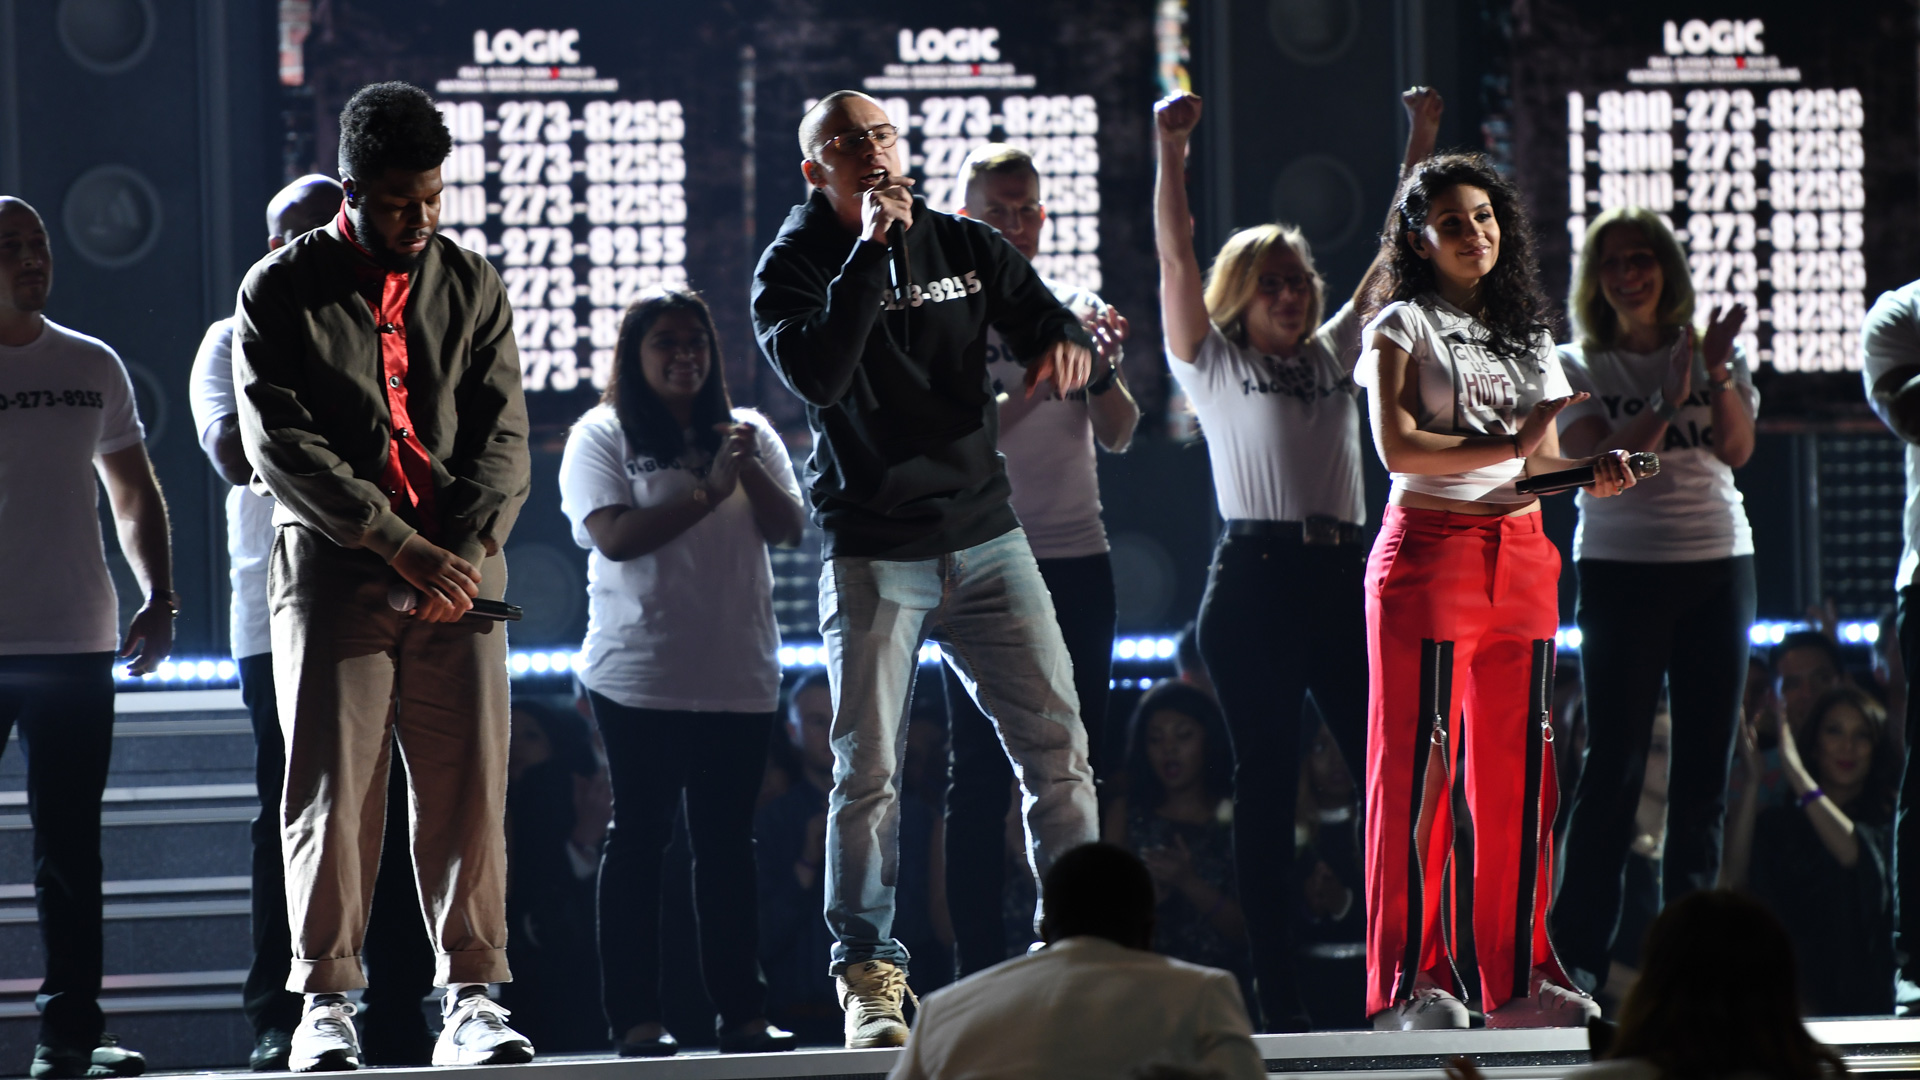 Alessia Cara, Khalid, and Logic join onstage to perform the poignant tune